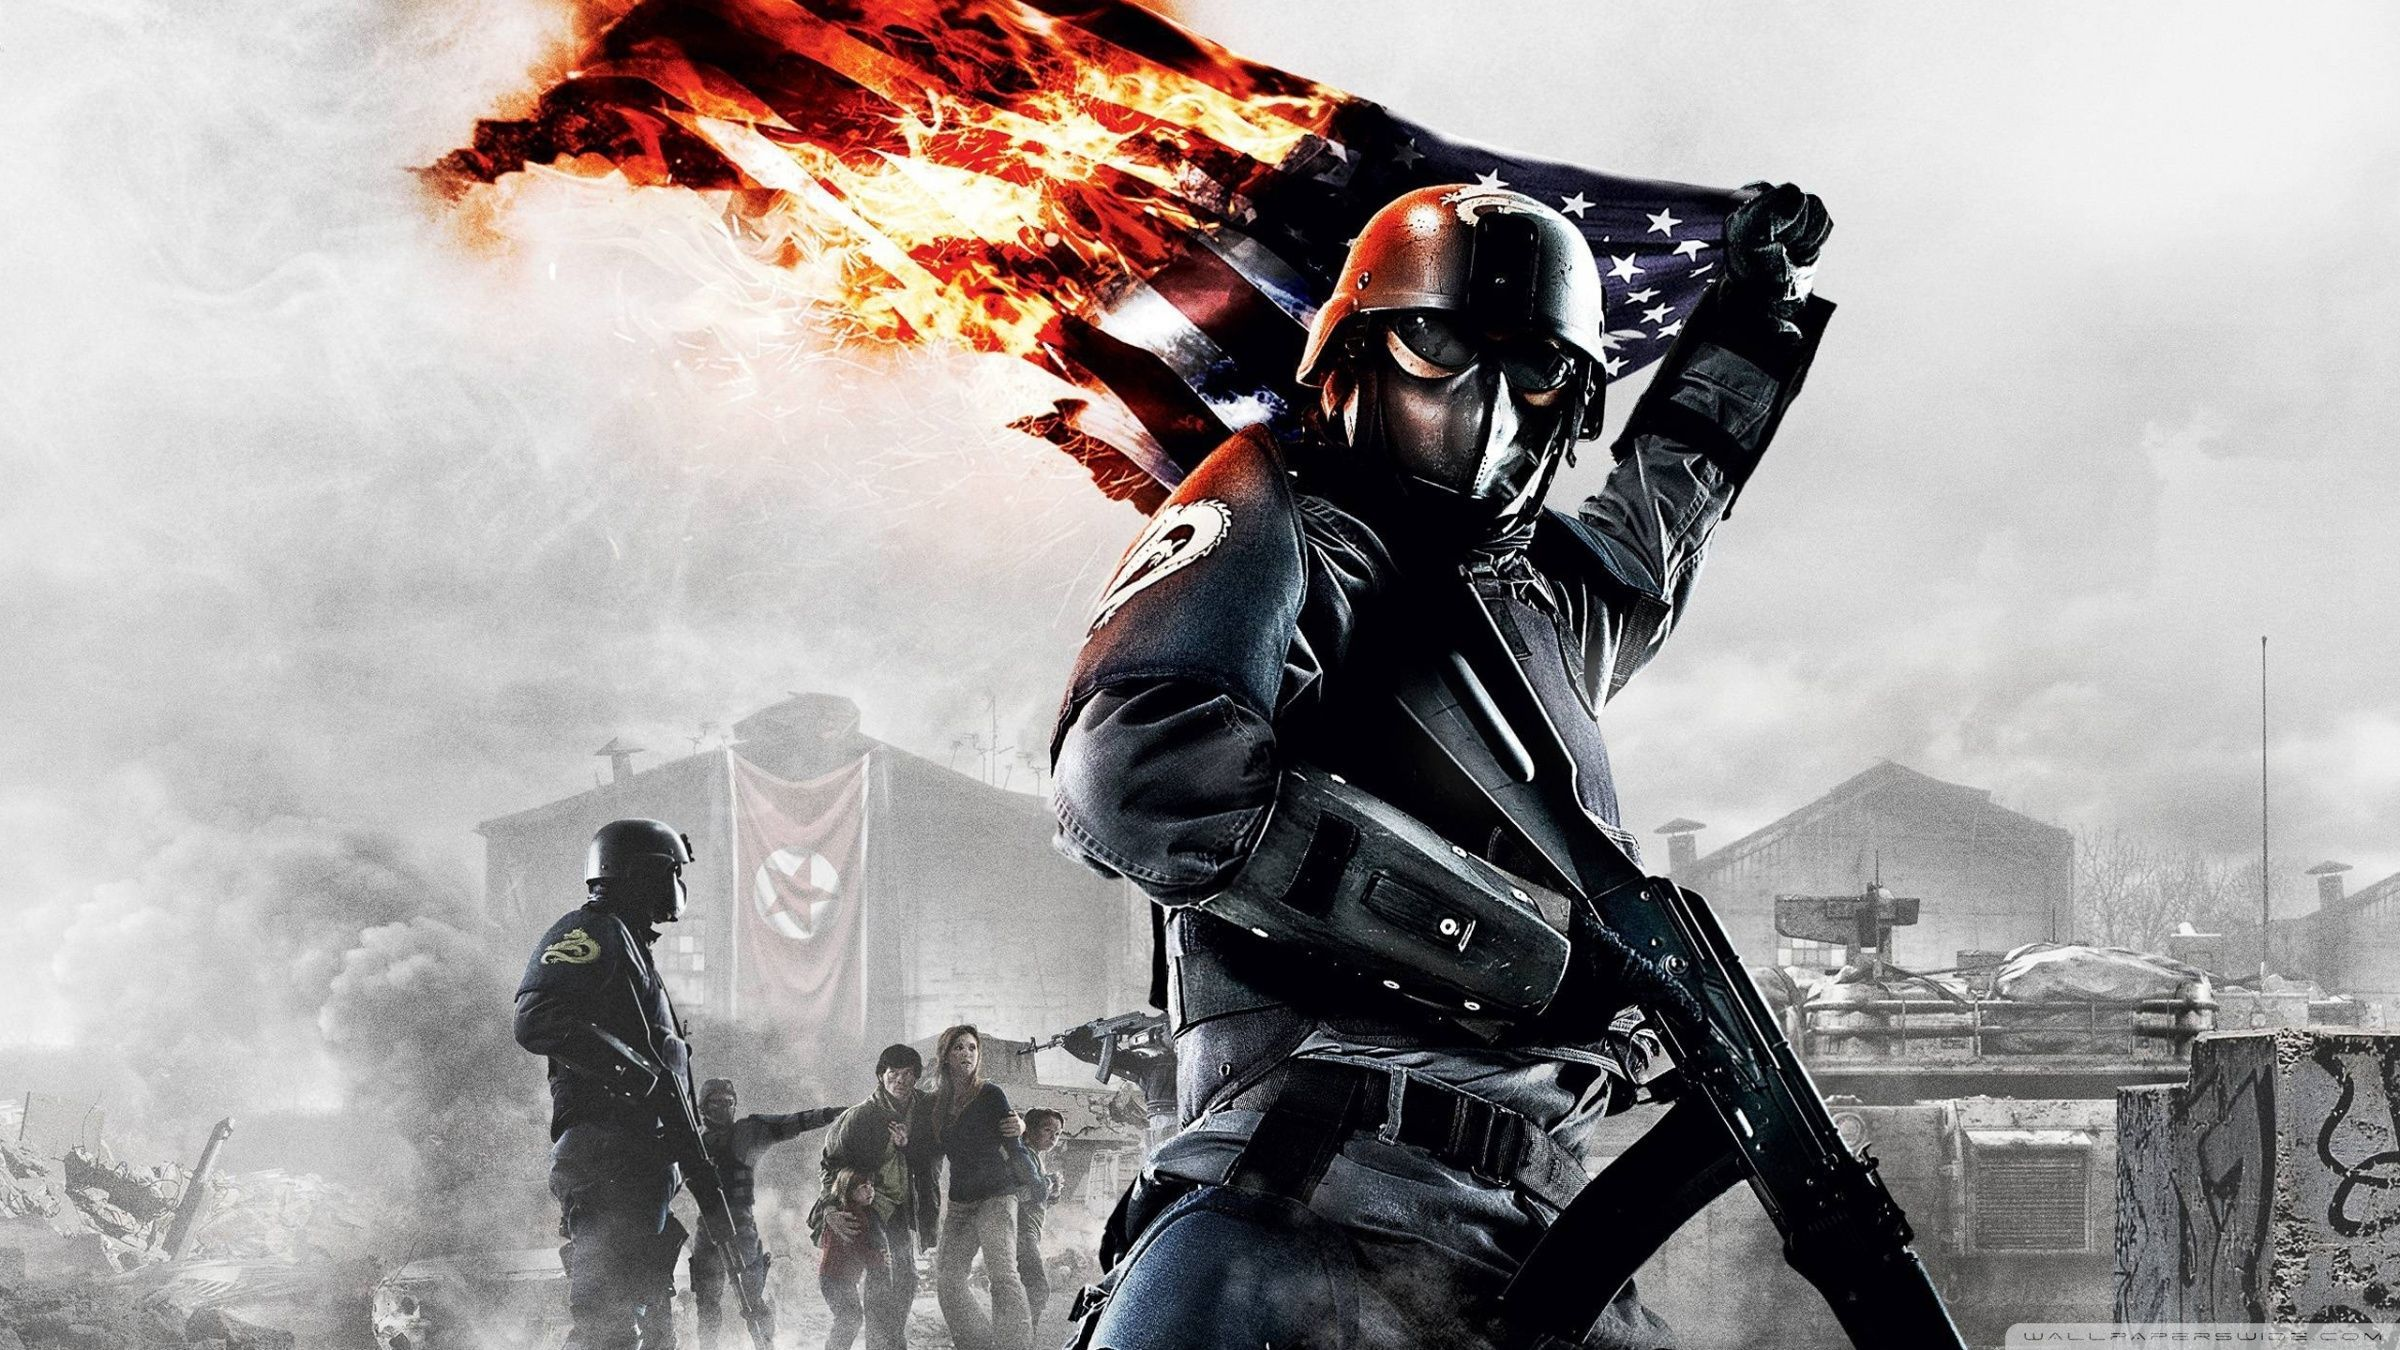 Wallpapers United States Action Film Action Adventure Game Pc Game Games Gaming Wallpapers Pc Games Wallpapers Gaming Wallpapers Hd